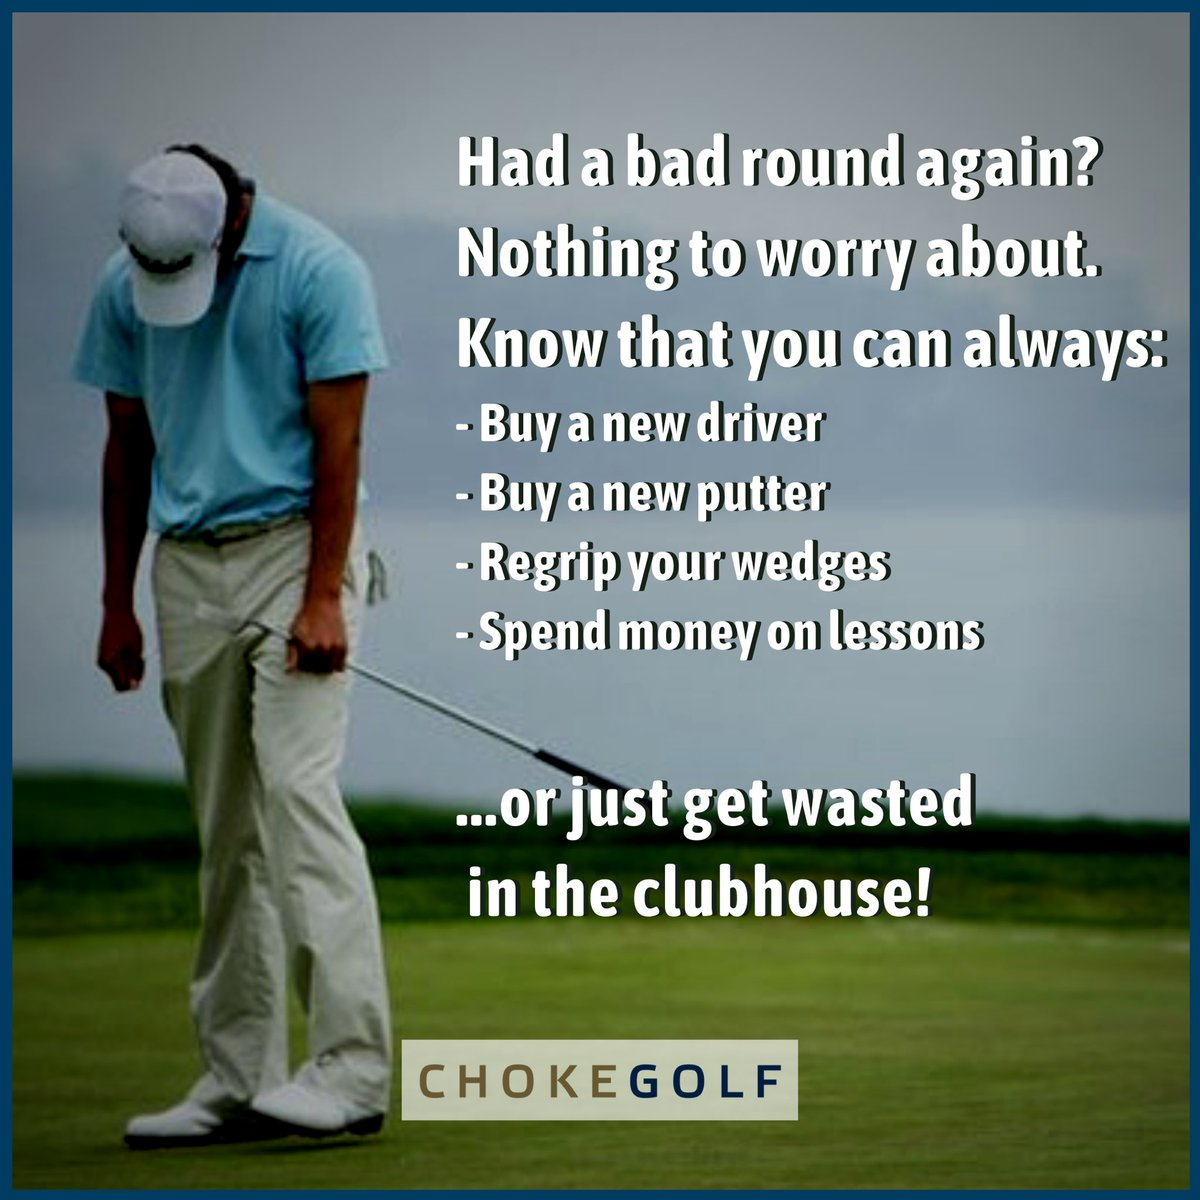 ⛳️⛳️⛳️ SEND this to someone who needs this 😂😂😂 —— #golf #pgatour #pga #europeantour #golftour #golflife #chokegolf #win #winning #sports #sport #memes #pgamemes #golfgods #game #choke #irons #driver #promotion #wasted #beer #drinks #hard #clubhouse https://t.co/tf8en6eaY0